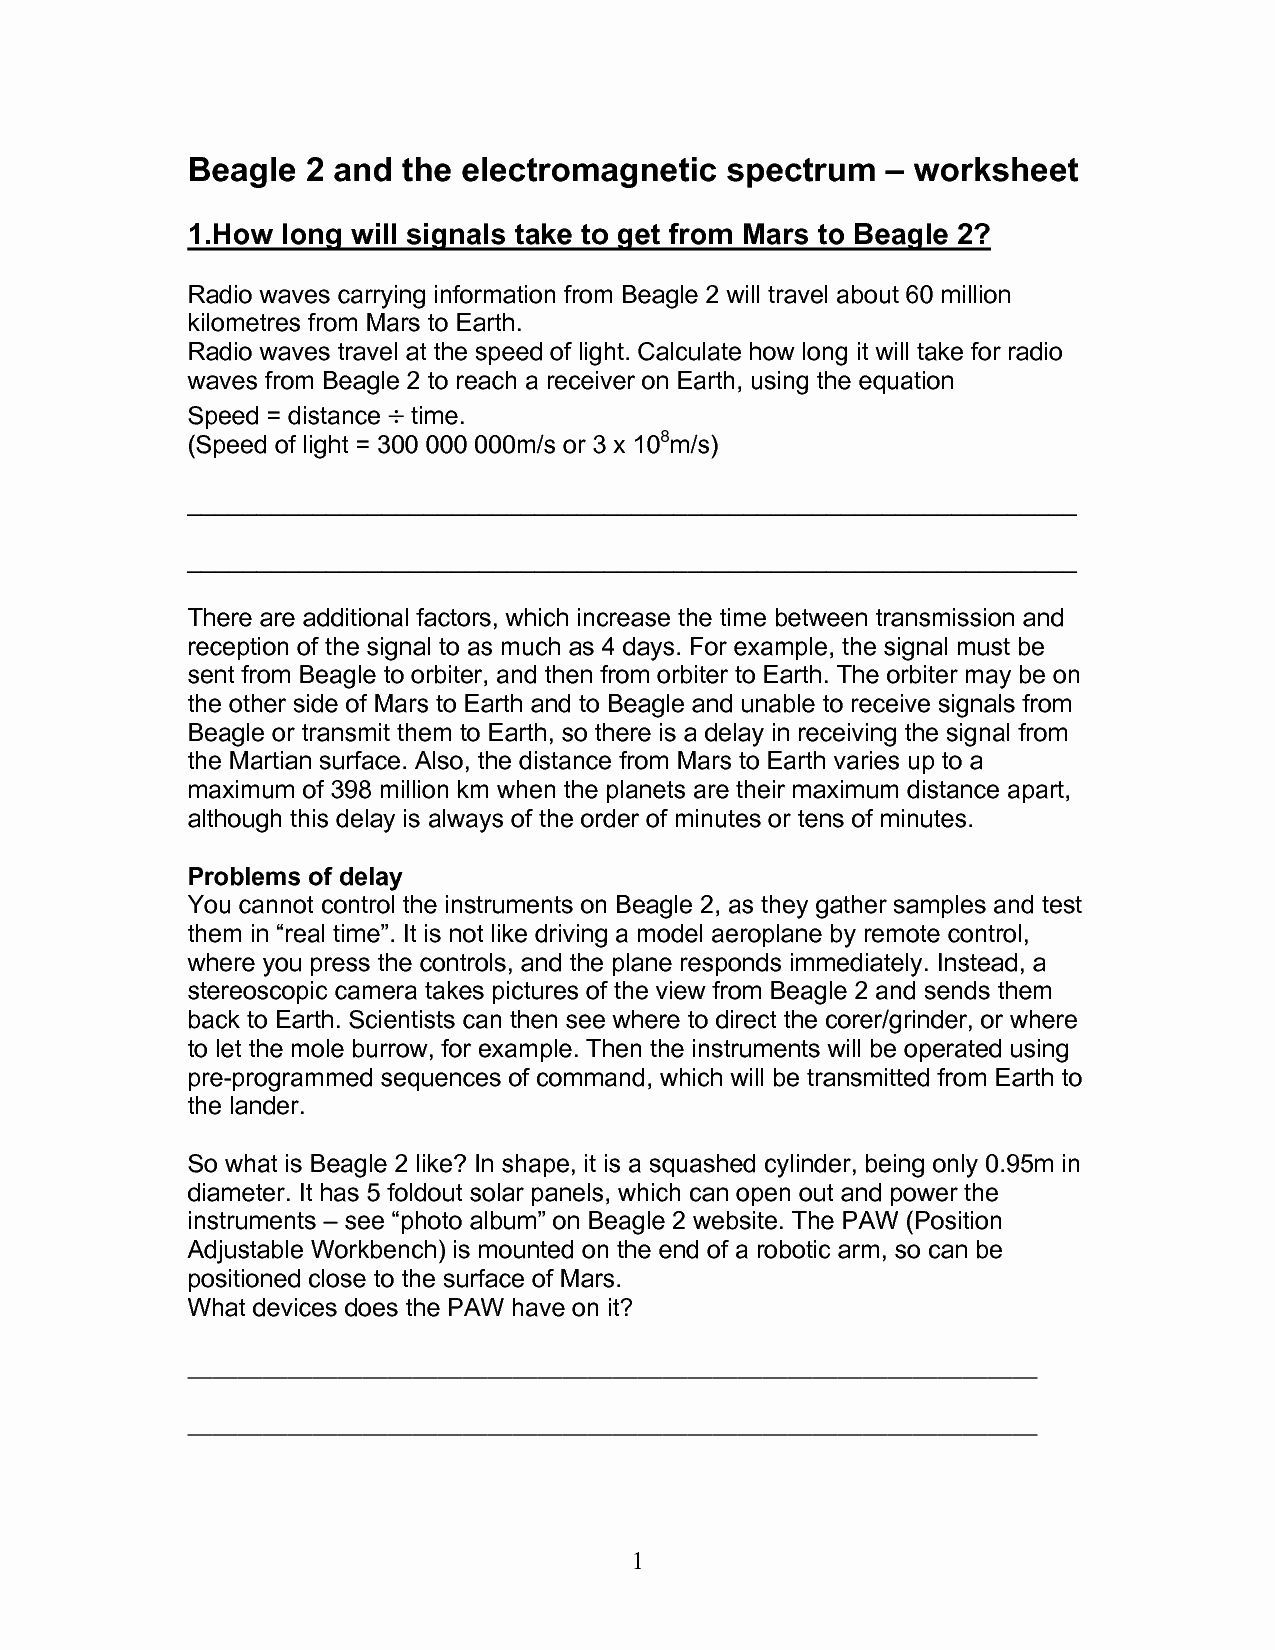 50 Electromagnetic Spectrum Worksheet High School In